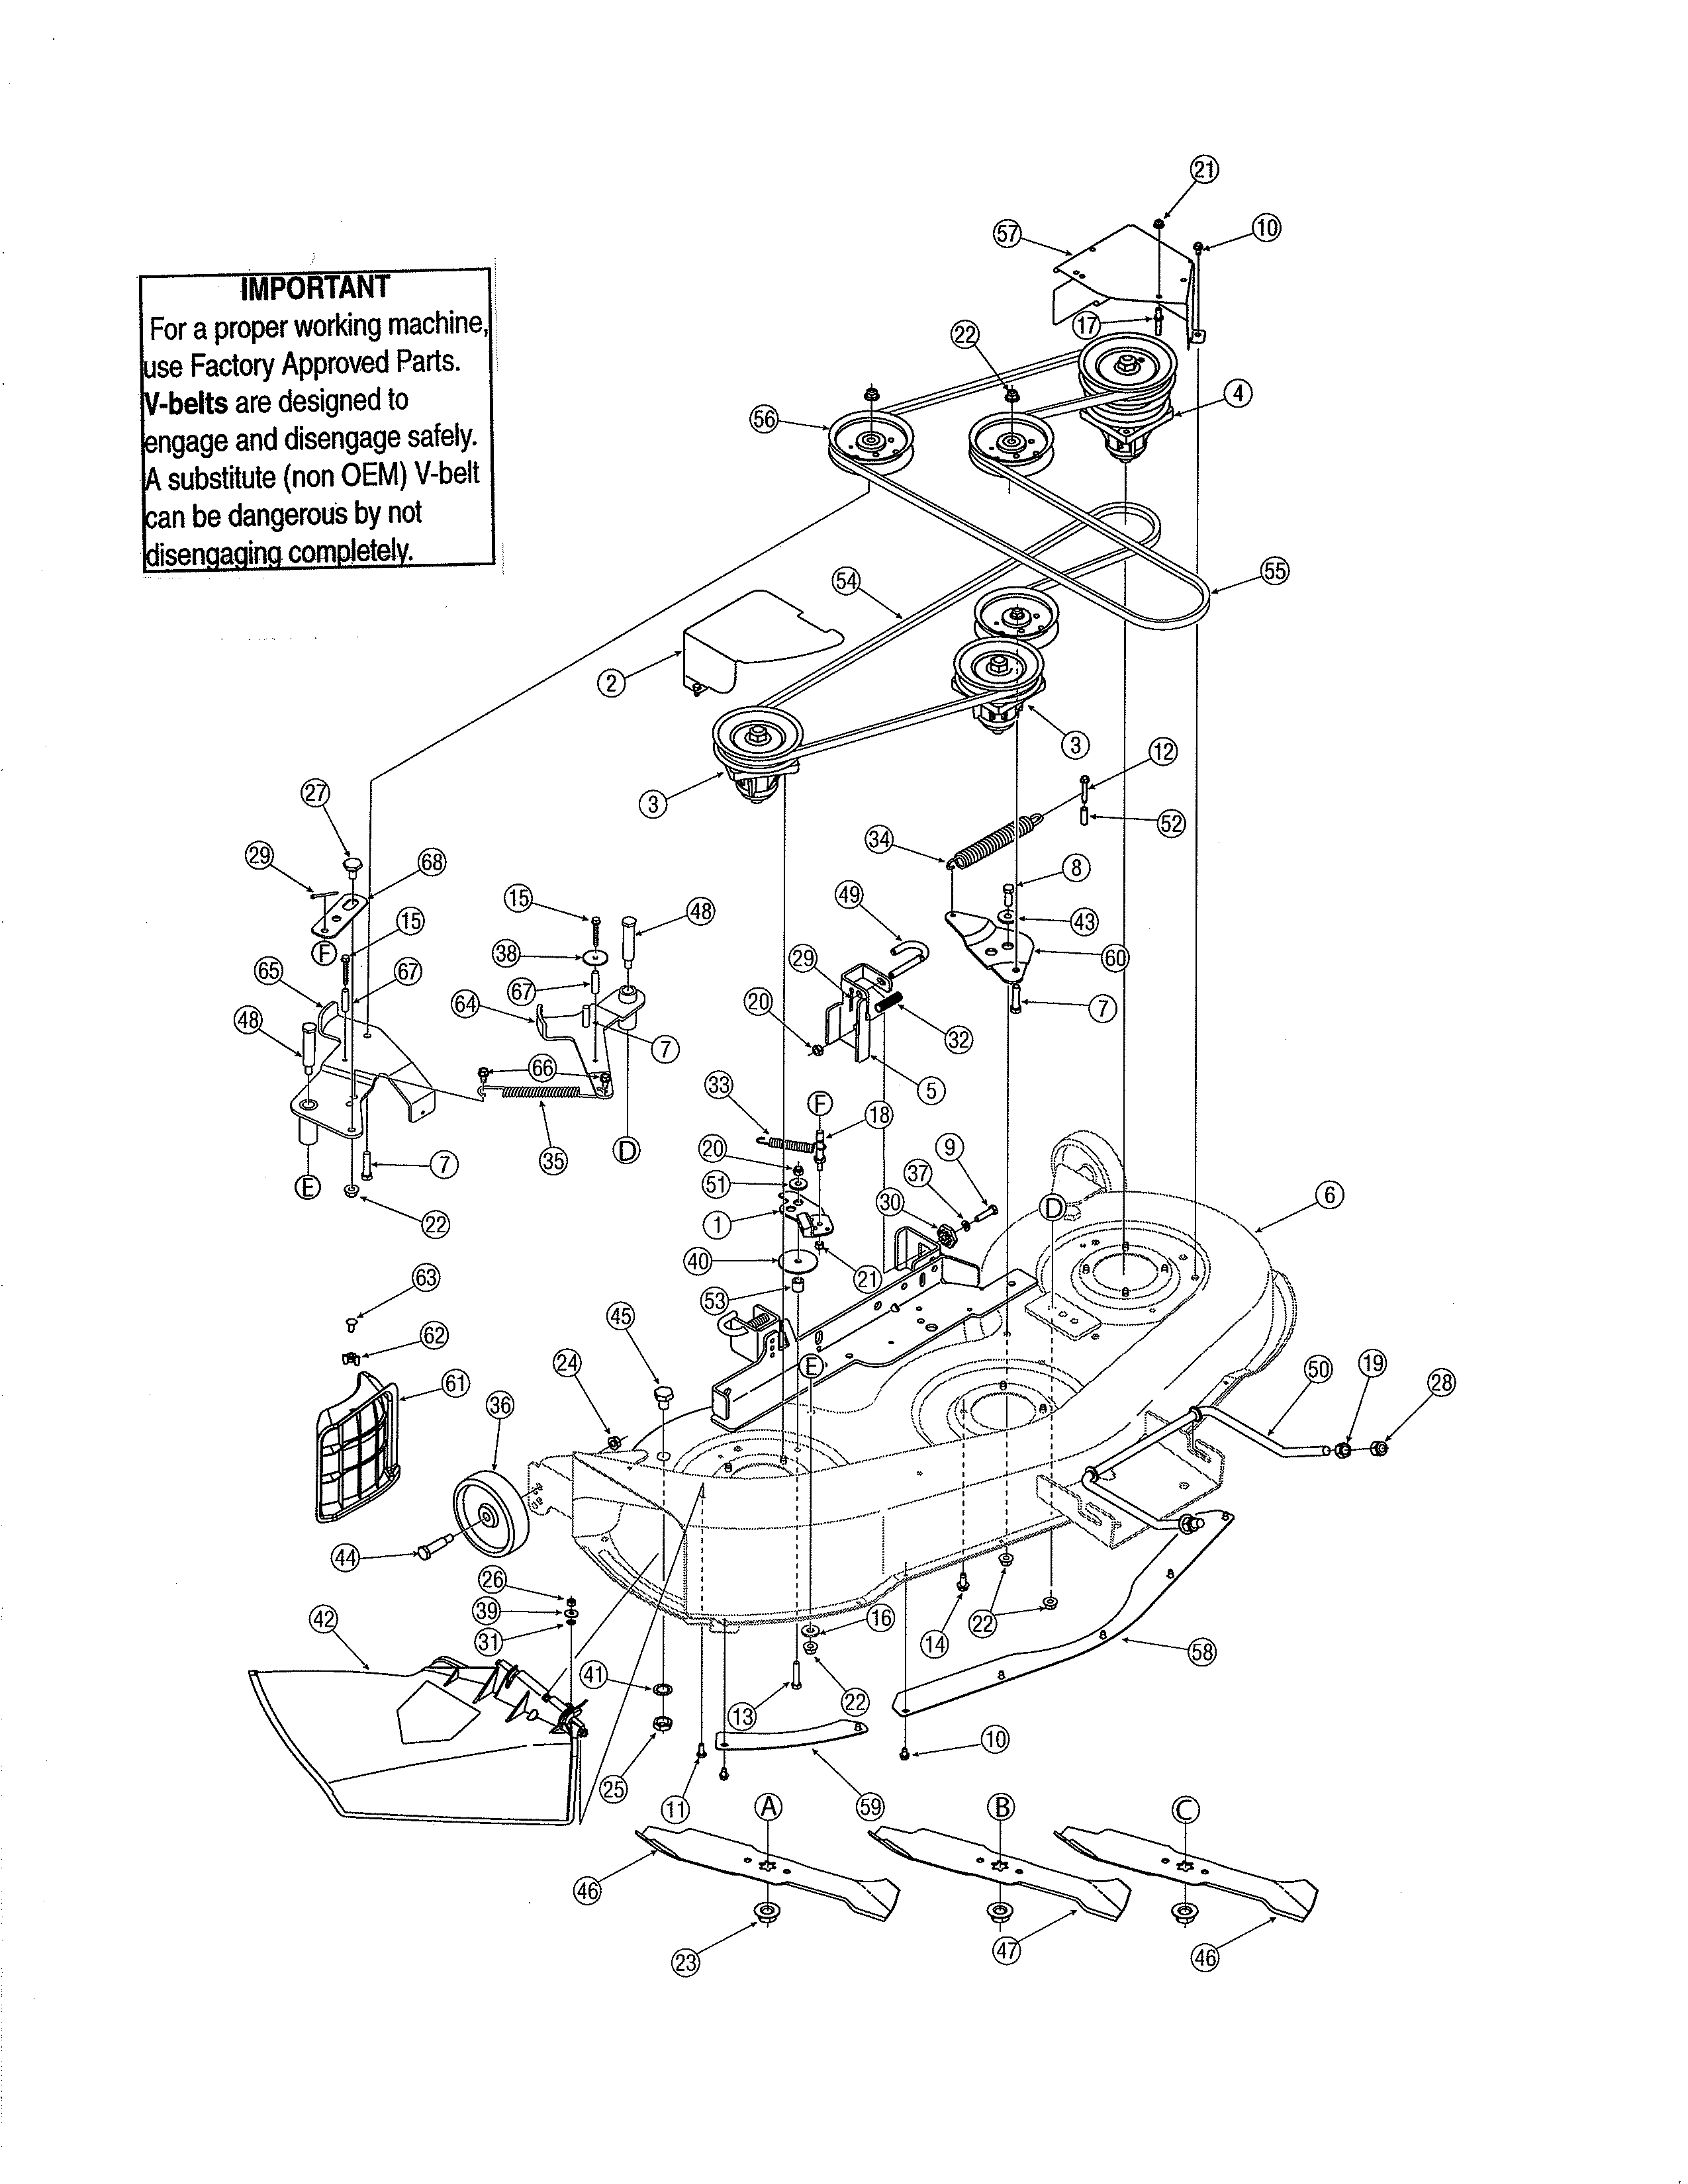 small resolution of 46 deck manual pto diagram parts list for model 13ap605h755 yardman parts riding mower tractor parts searspartsdirect